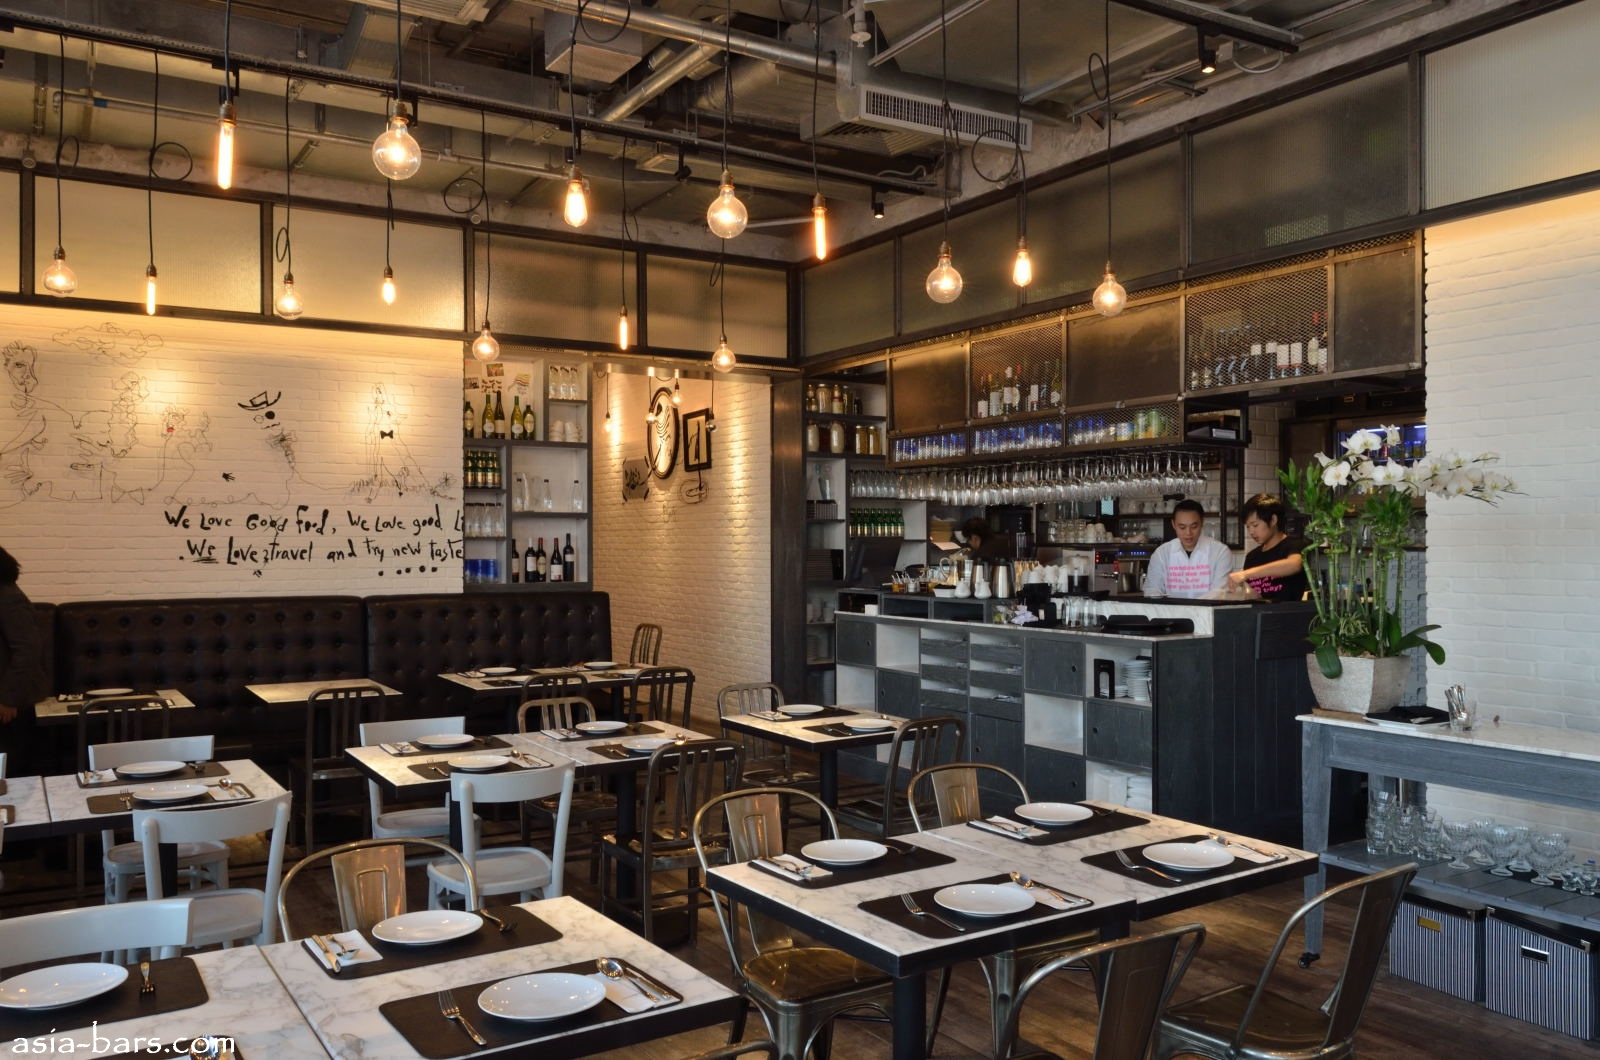 GREYHOUND Cafe Ifc Mall In Hong Kong Acclaimed Bangkok